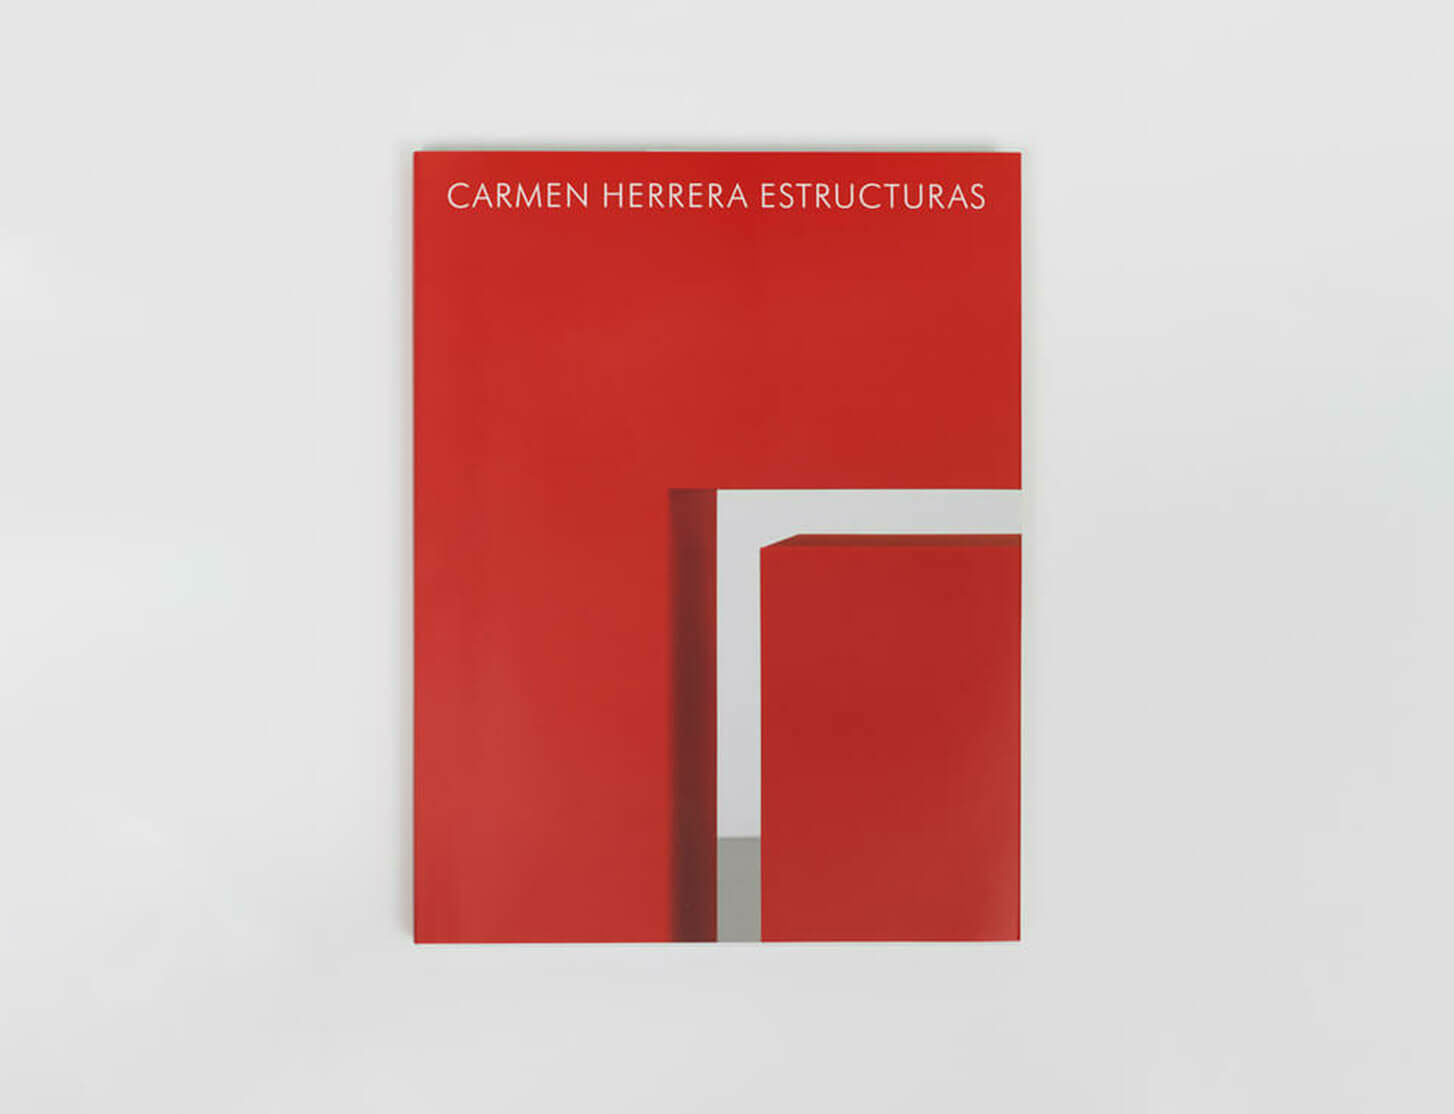 Publication dedicated to Carmen Herrera's Estructuras now published by Lisson Gallery